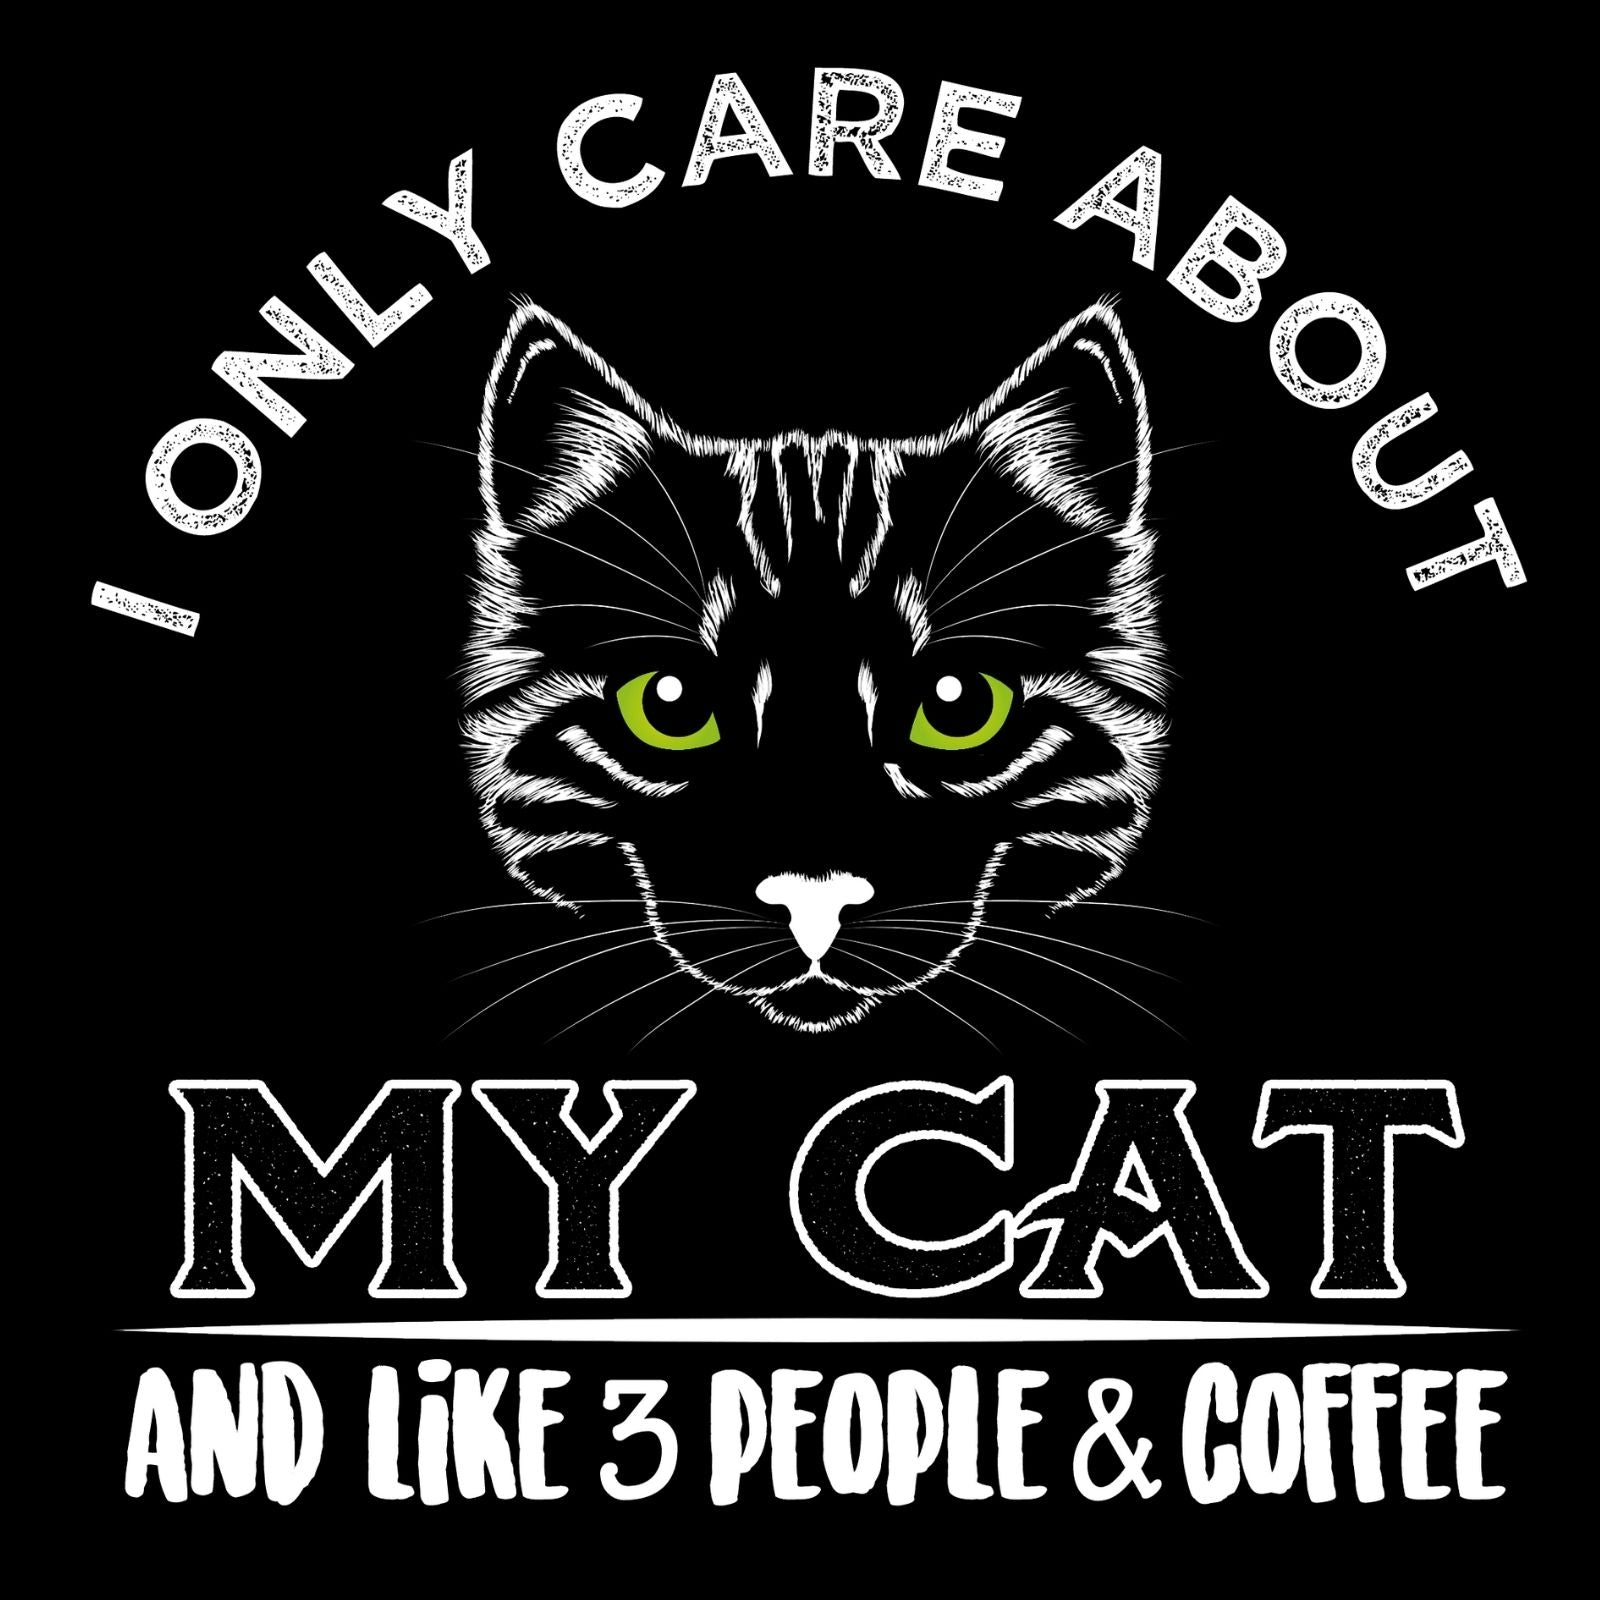 I Only Care About My Cat And Like 3 People and Coffee - Bastard Graphics